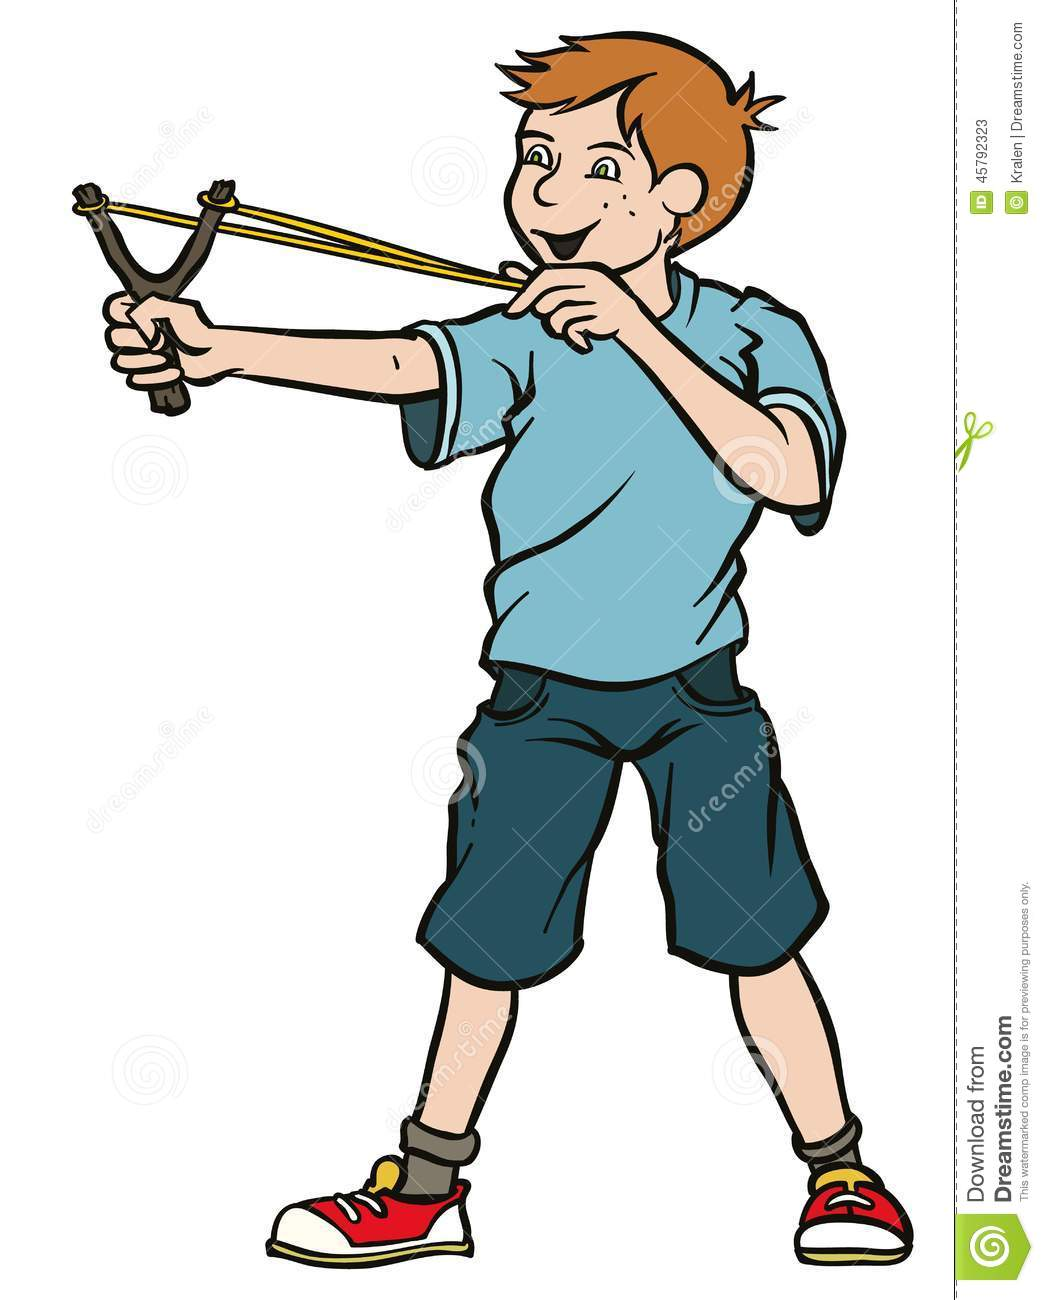 boy with slingshot stock vector image 45792323 clip art anteilnahme clip art anti shapes